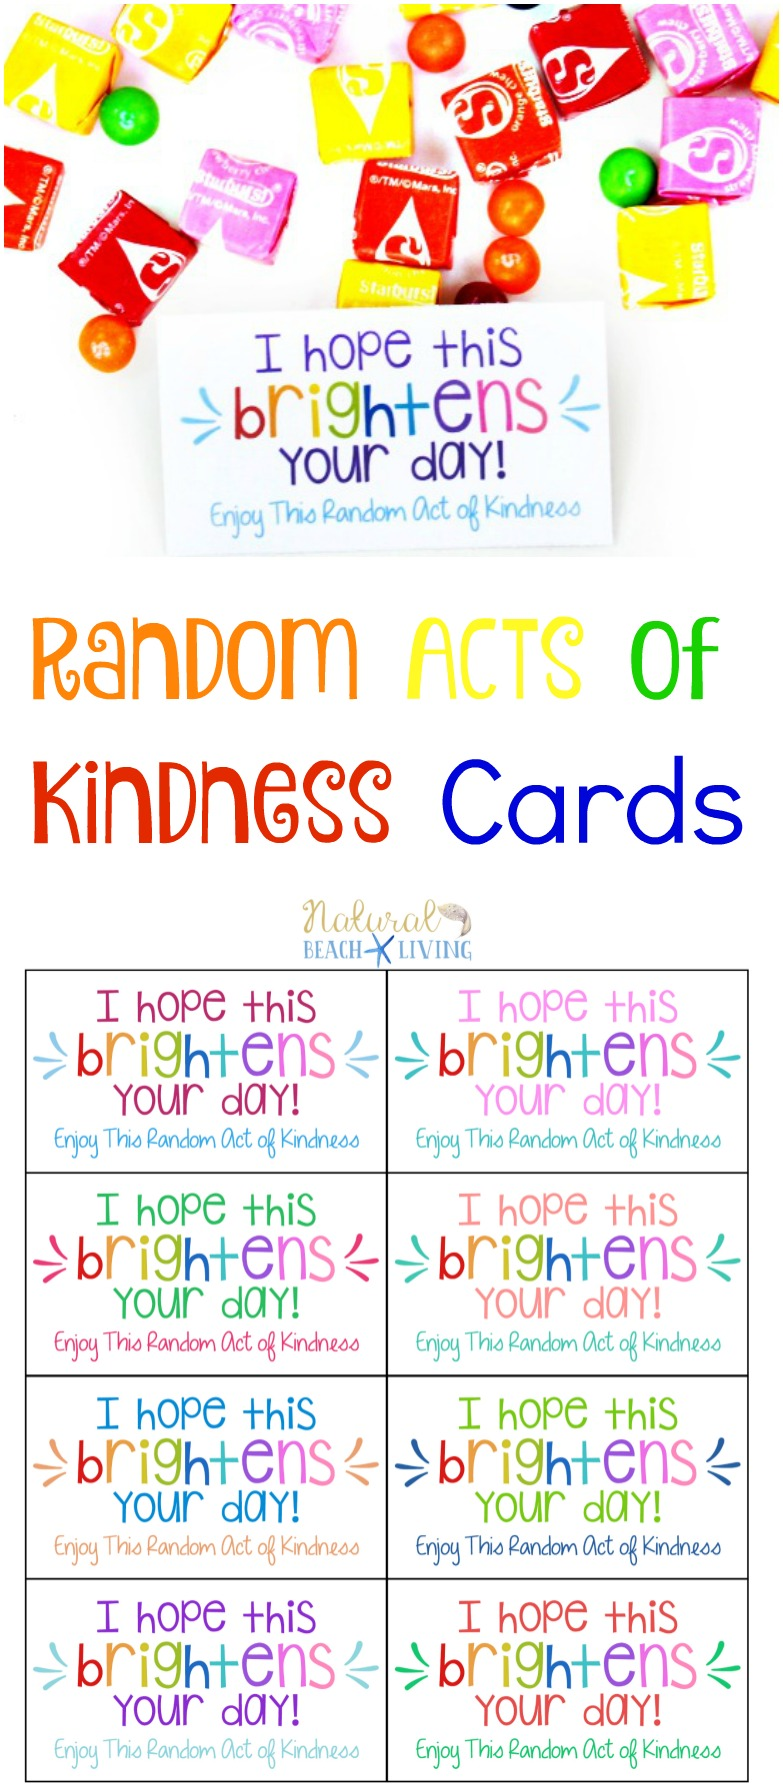 photo about I Printable named The Most straightforward Random Functions of Kindness Printable Playing cards Cost-free